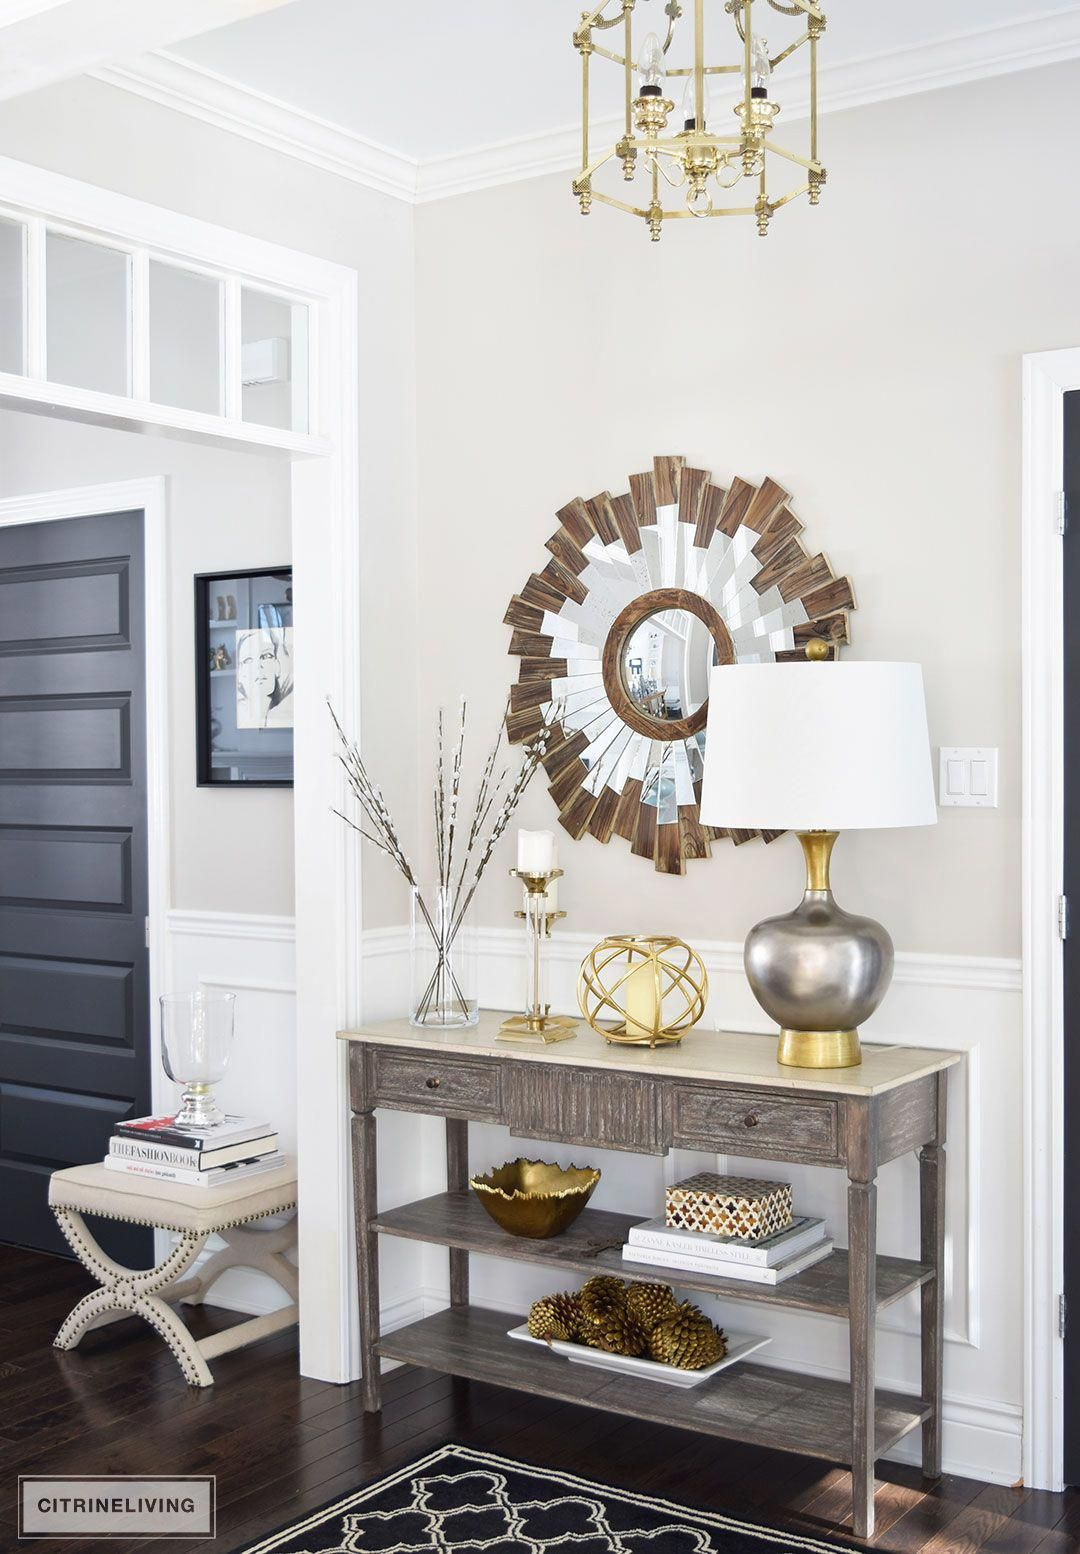 One Table For Ways Shop Your Own Home To Create Unique And New Styling Displays Gold Meta Console Table Decorating Entryway Table Decor Entry Table Decor